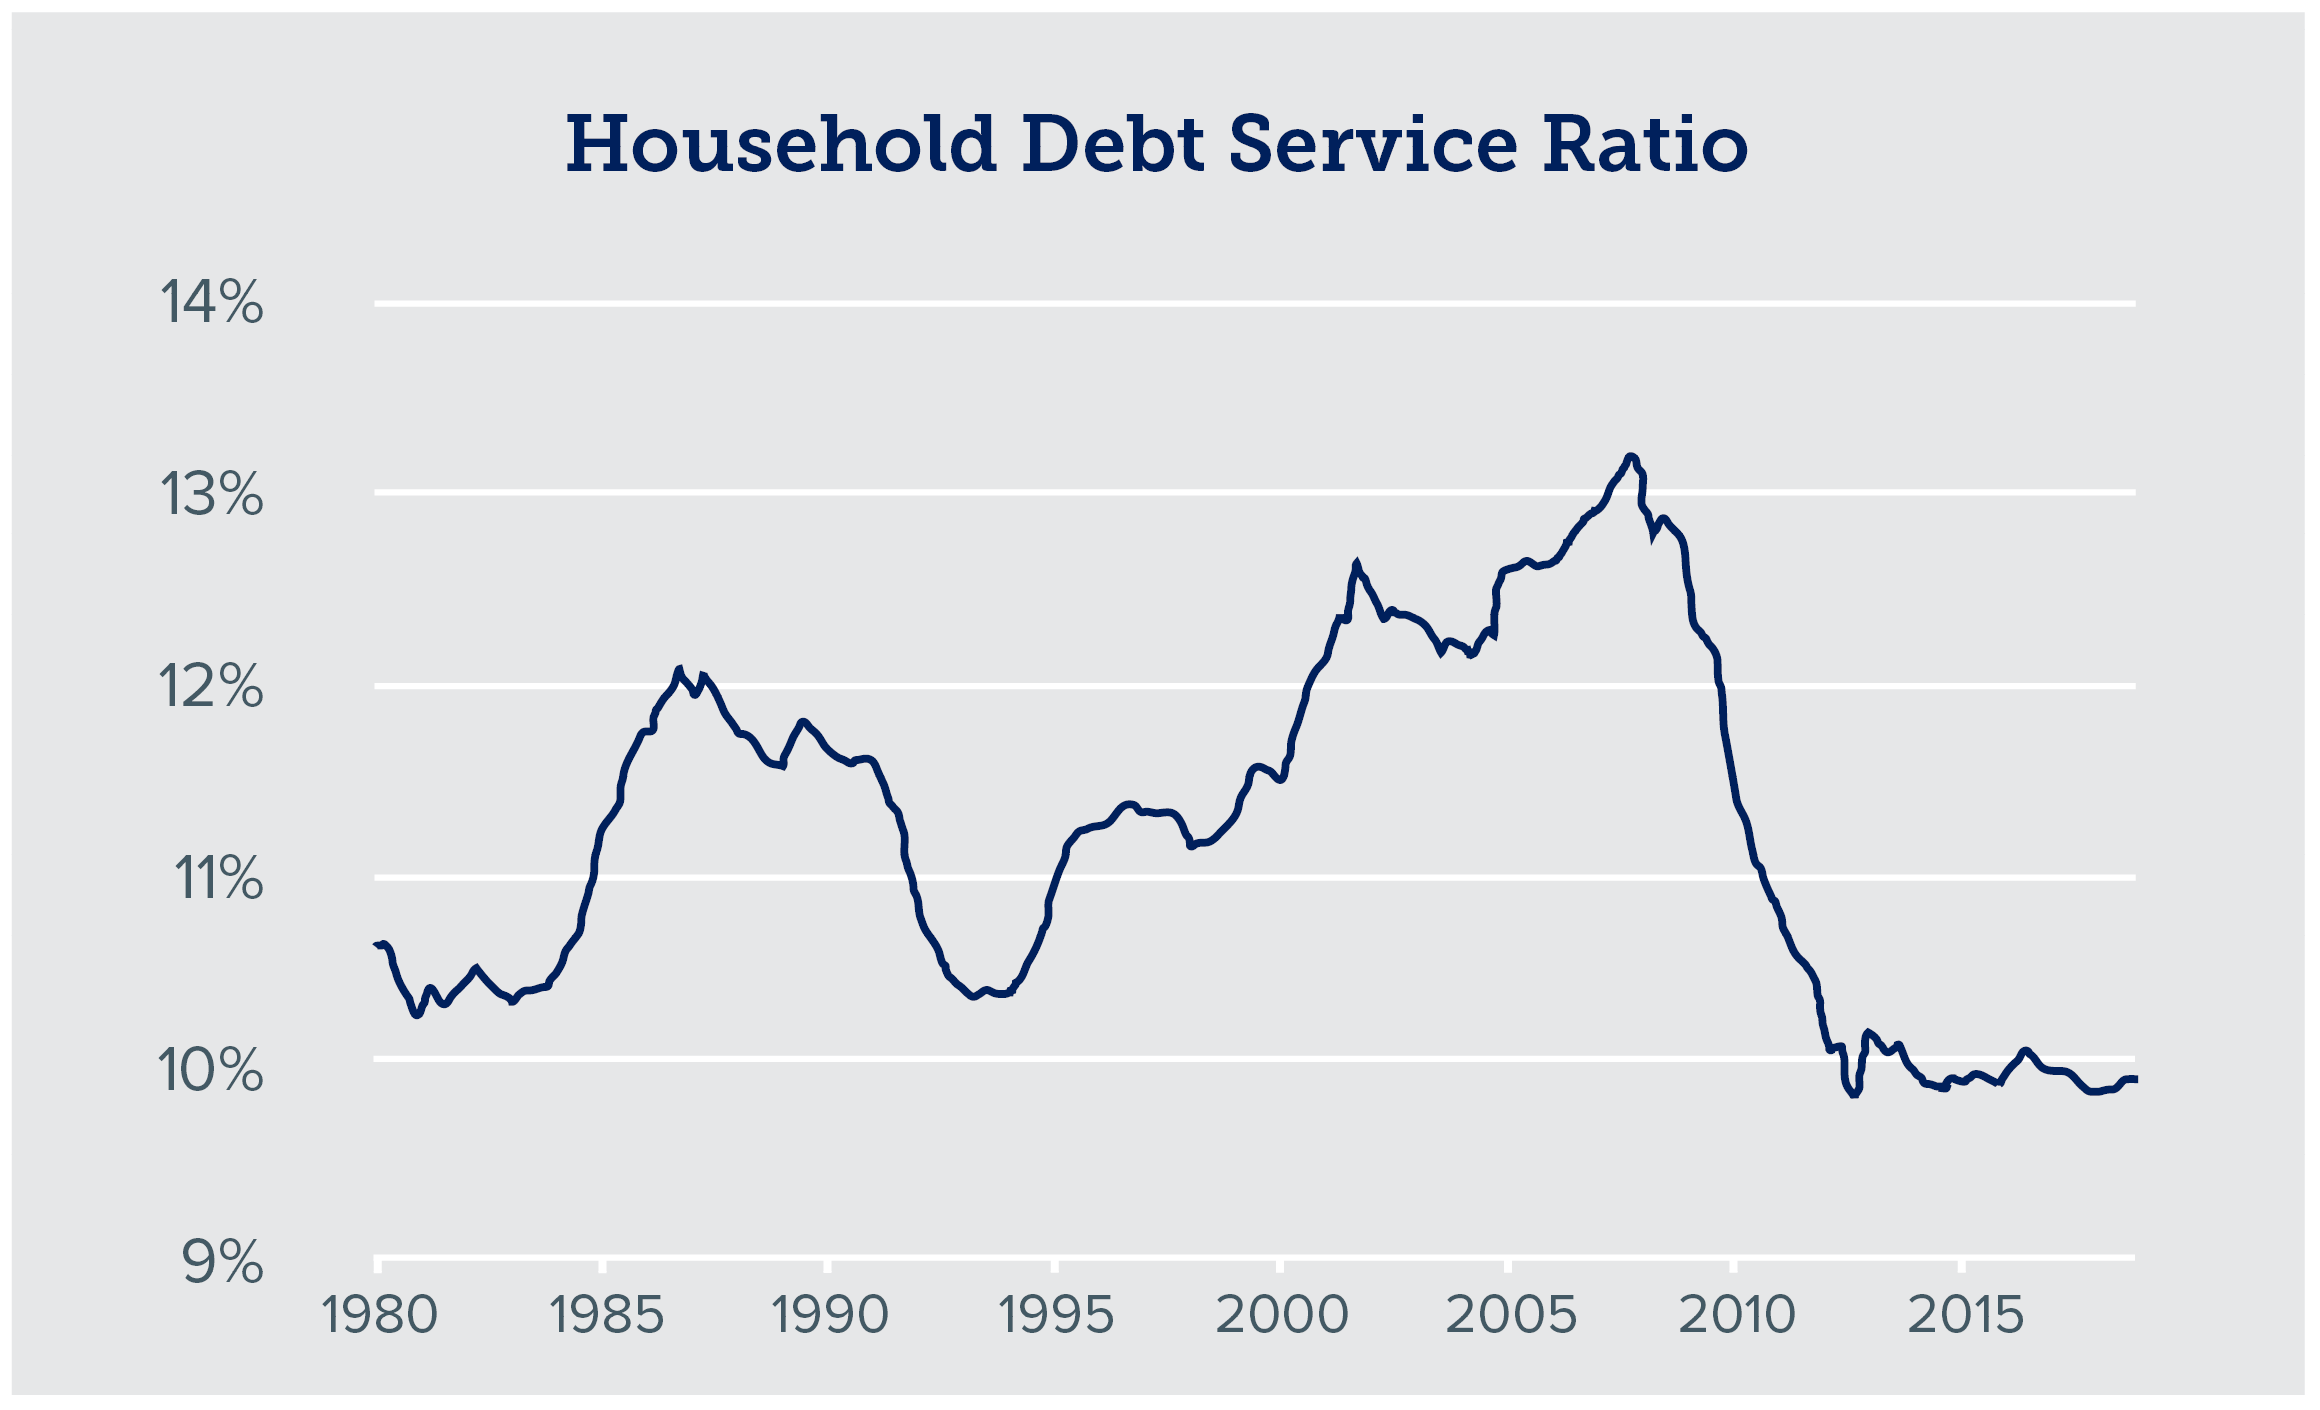 bar graph of household debt service ratio over time